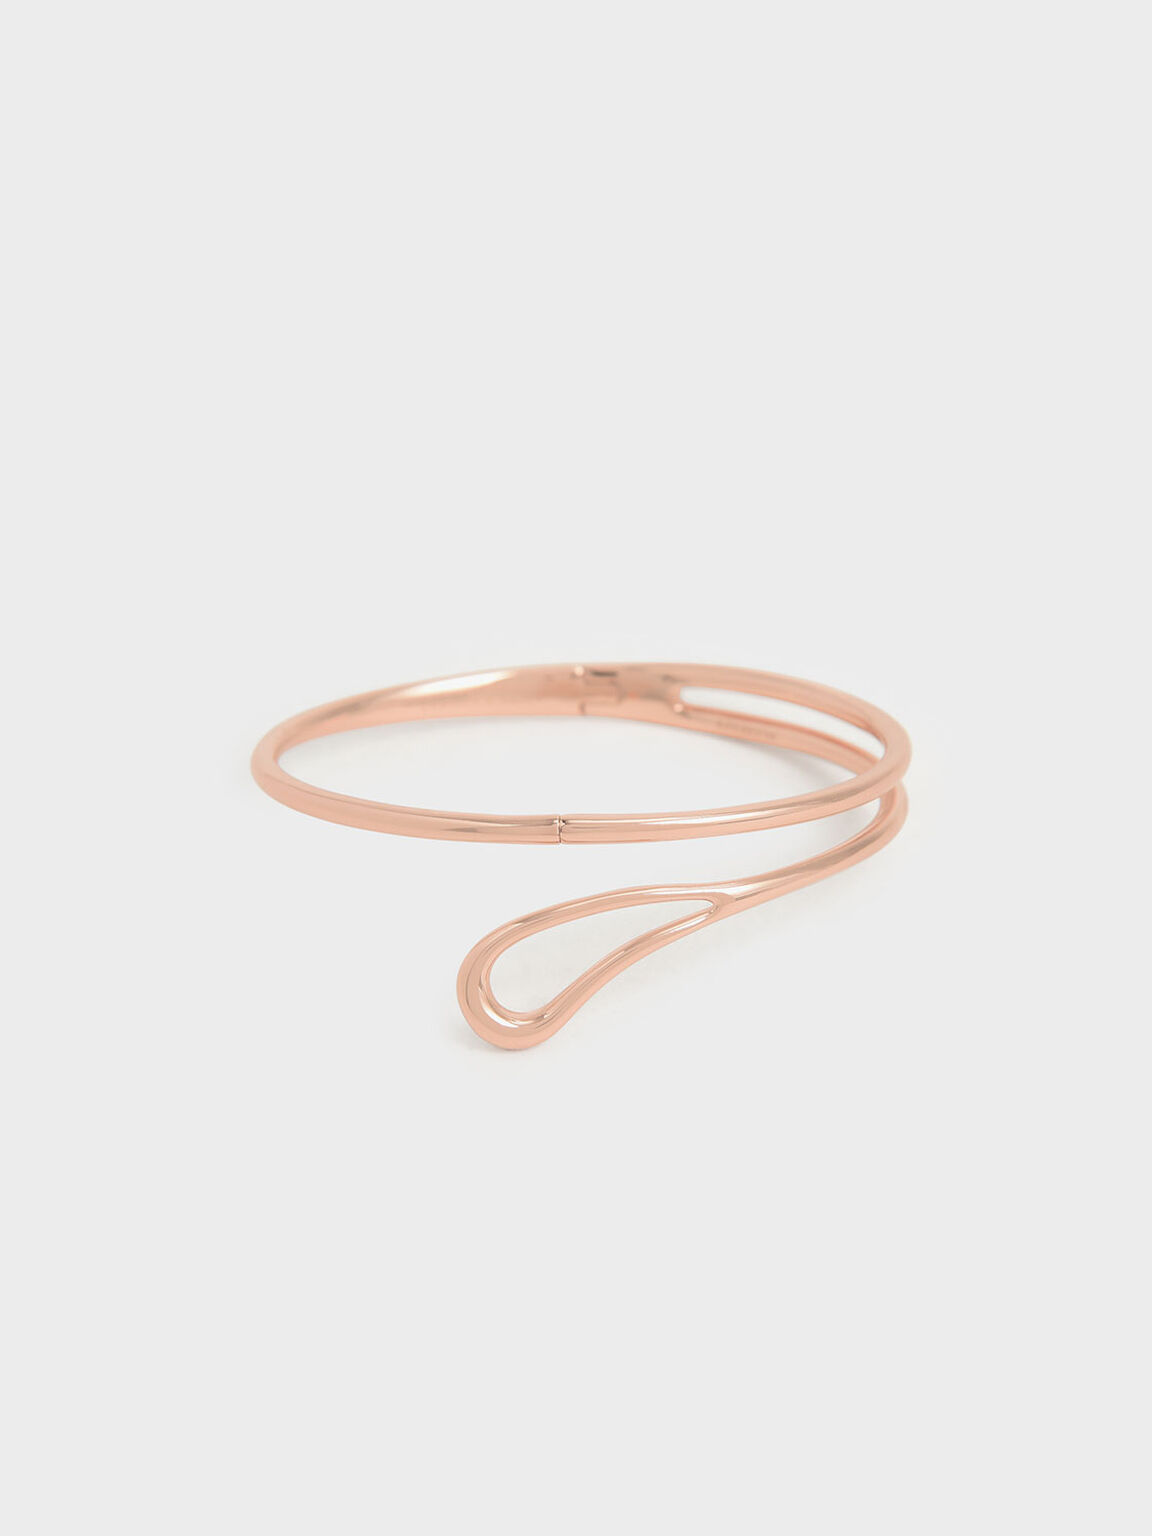 Sculptural Cuff Bracelet, Rose Gold, hi-res